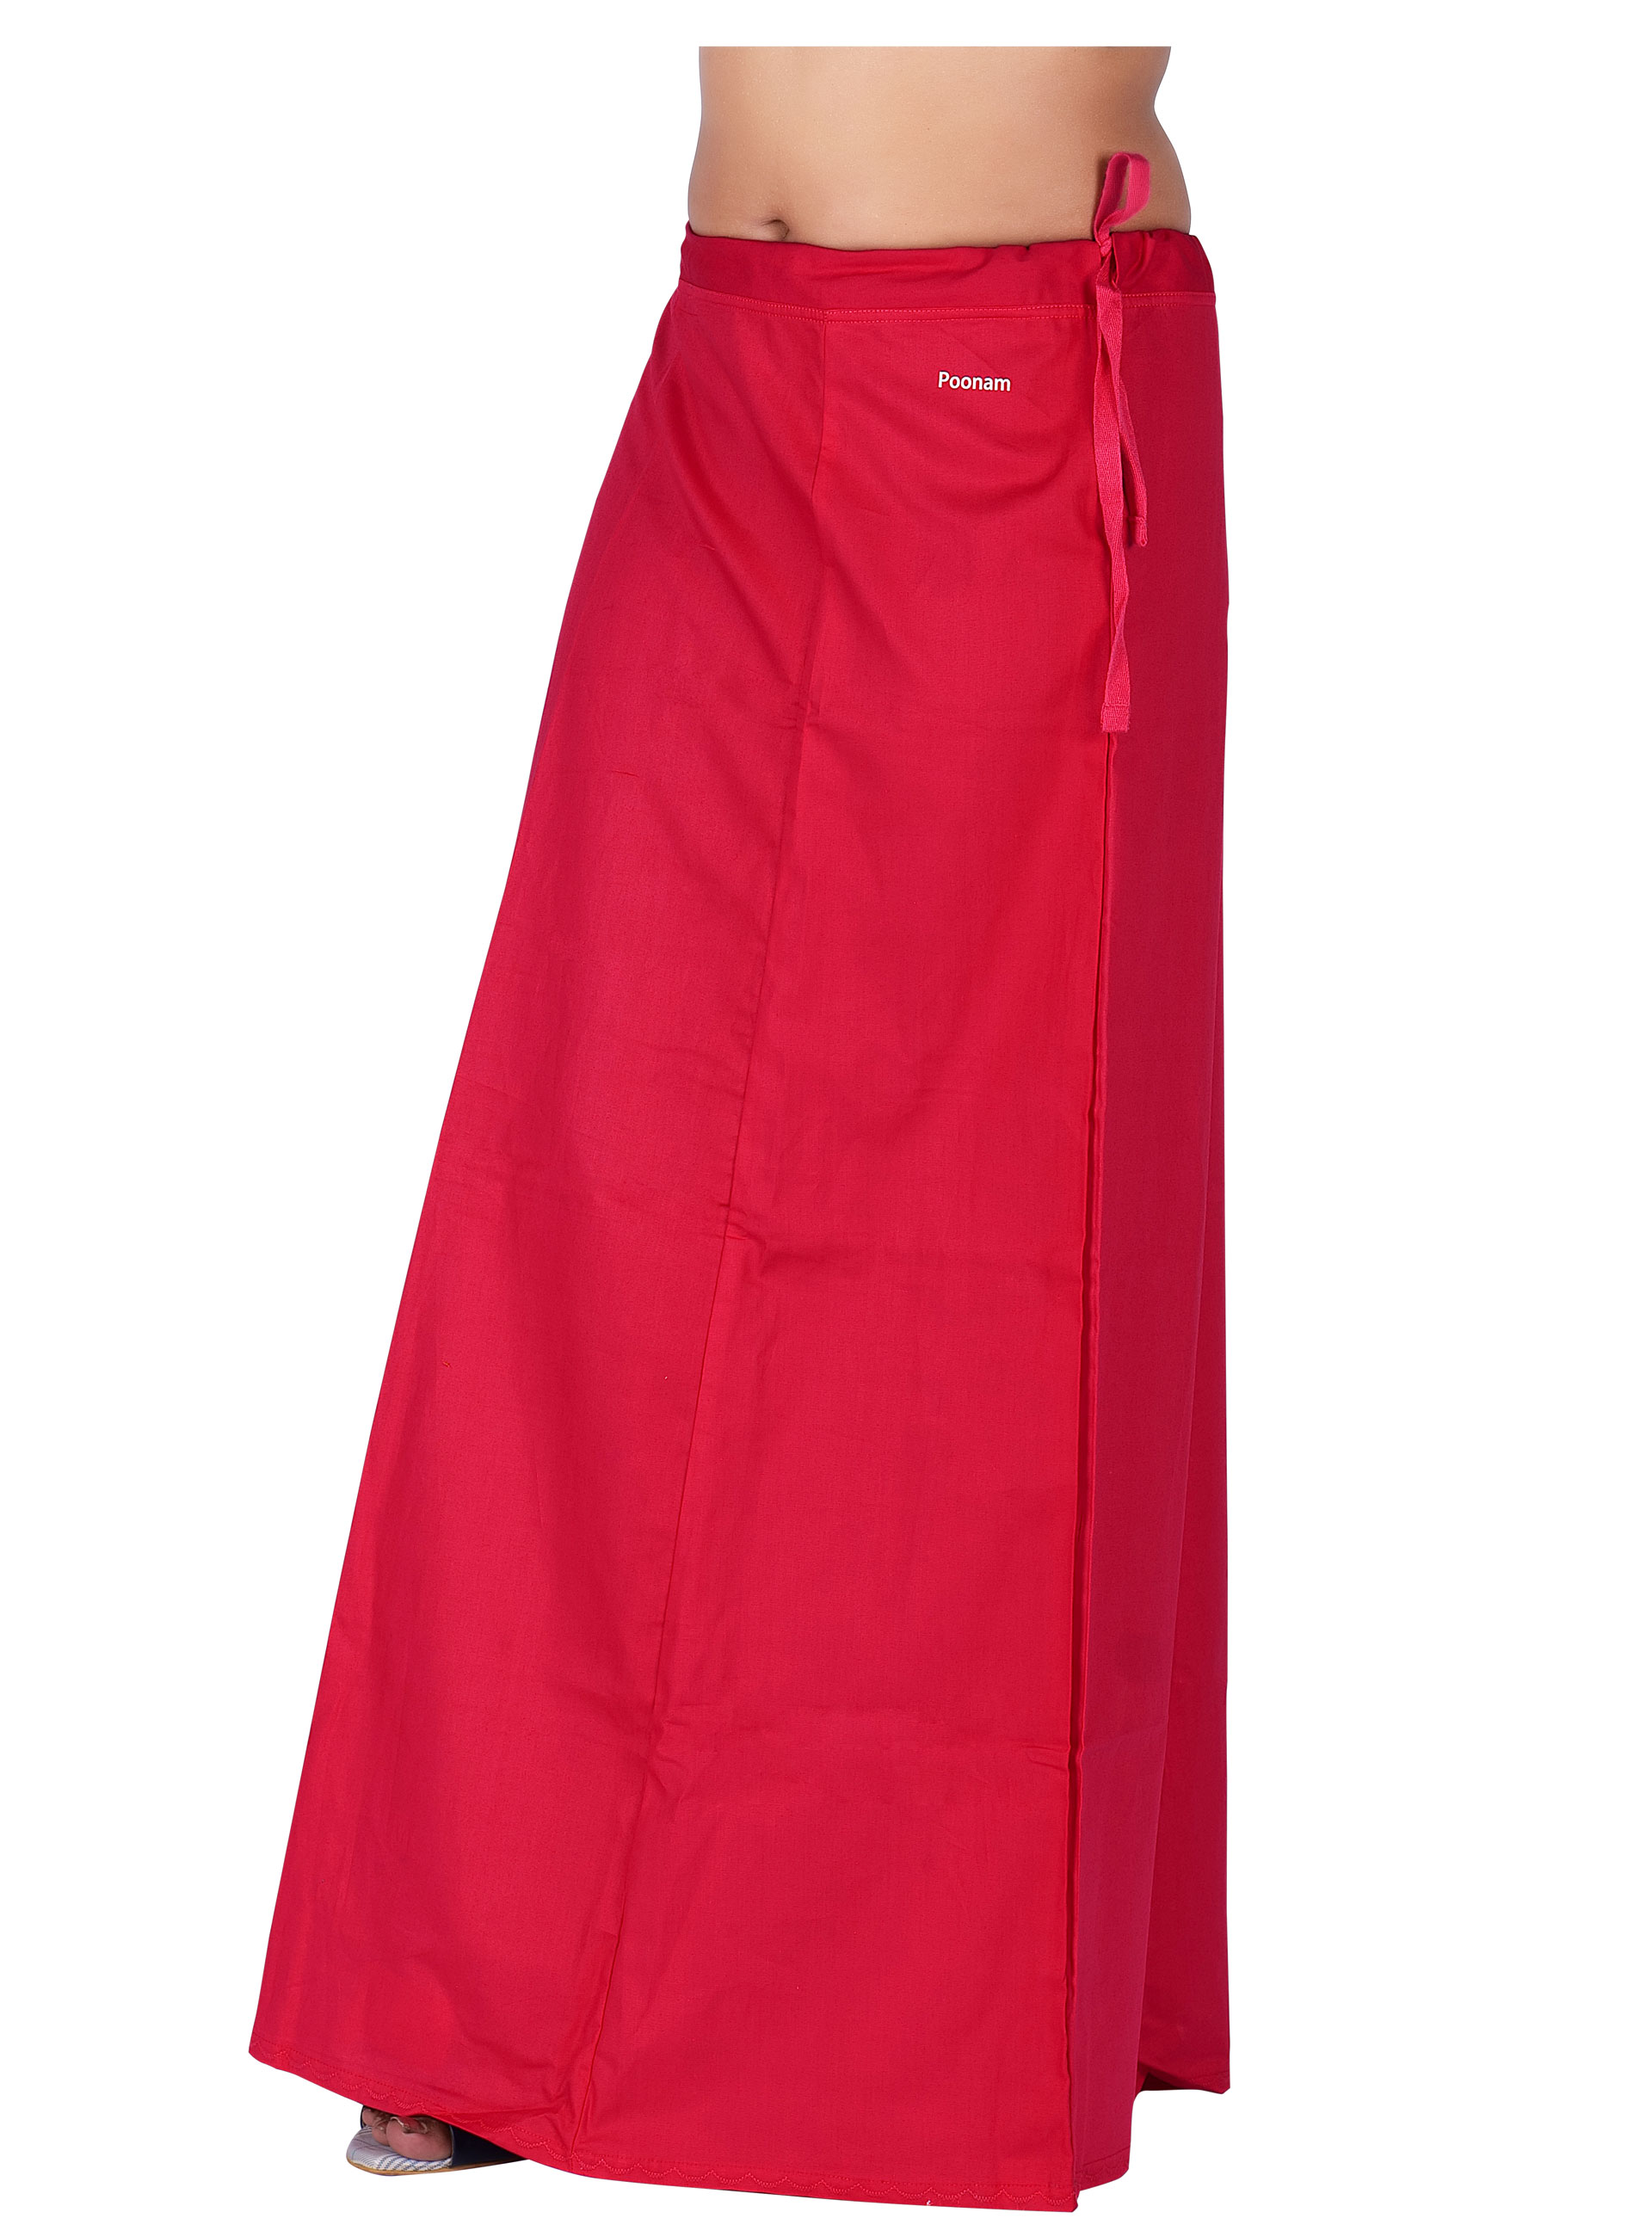 Red Color Aswati Premium Inskirts (7 PART)